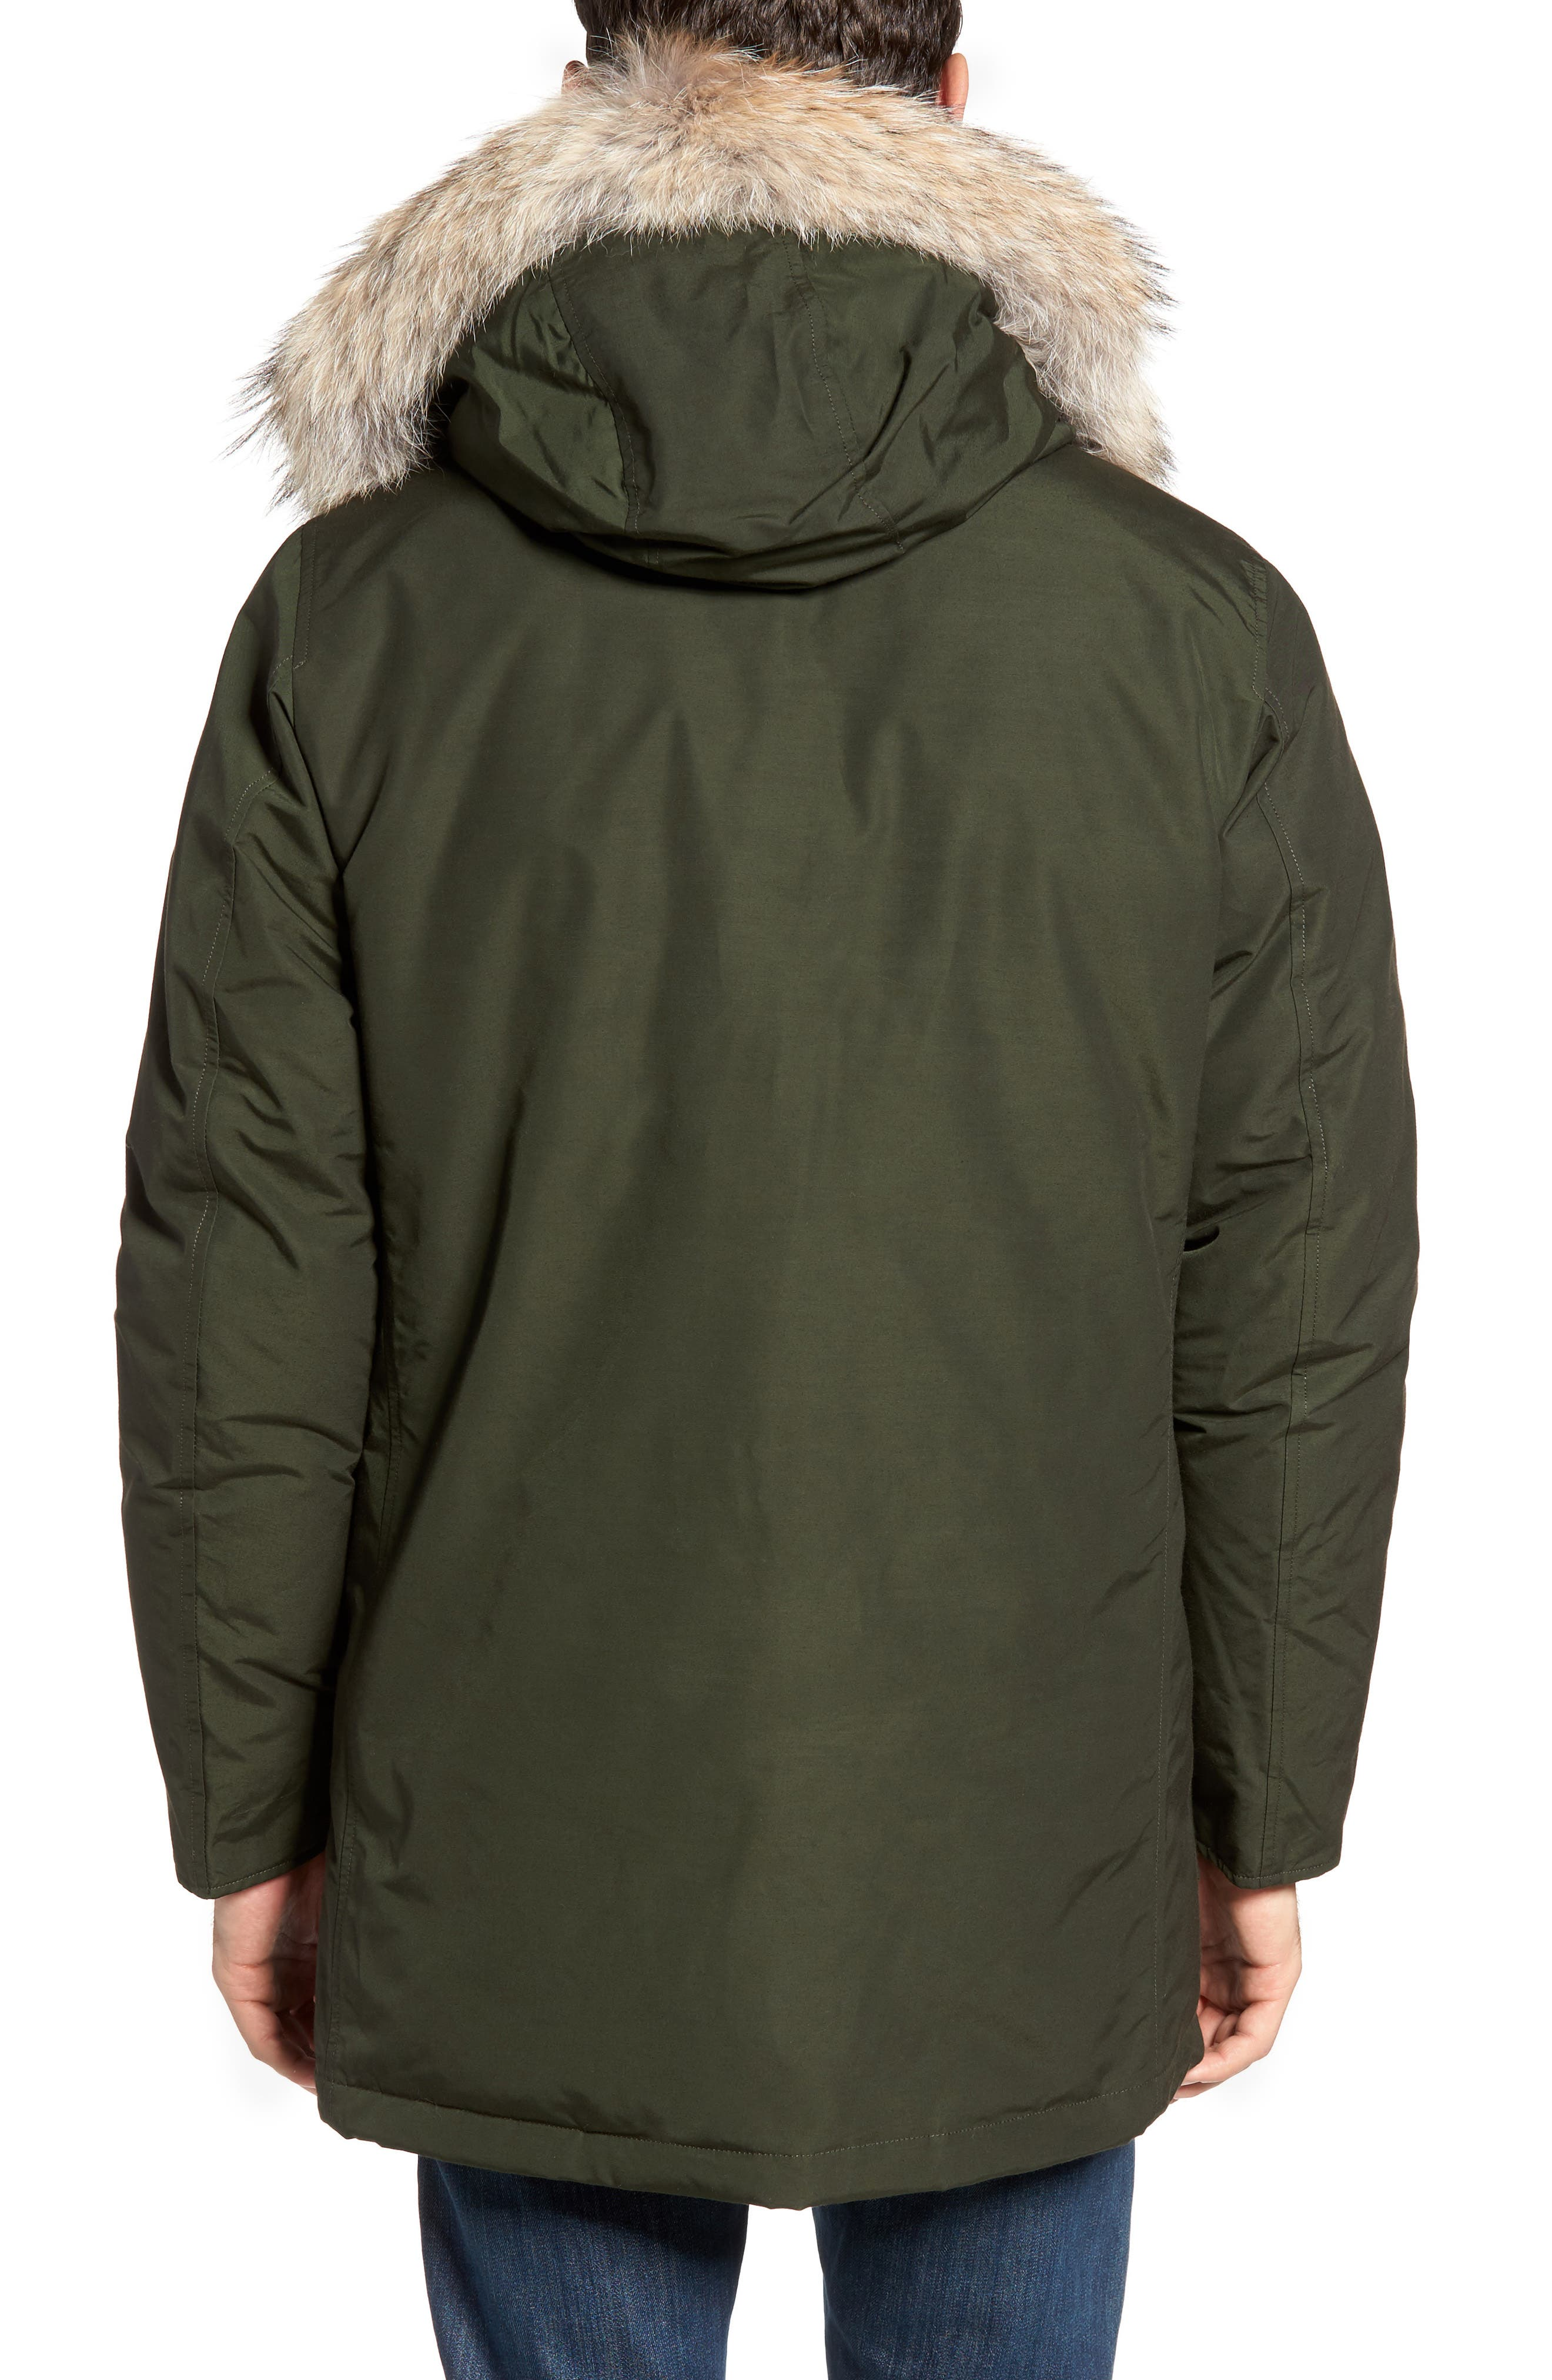 John Rich & Bros. Arctic Parka with Genuine Coyote Fur Trim,                             Alternate thumbnail 2, color,                             Rosin Green